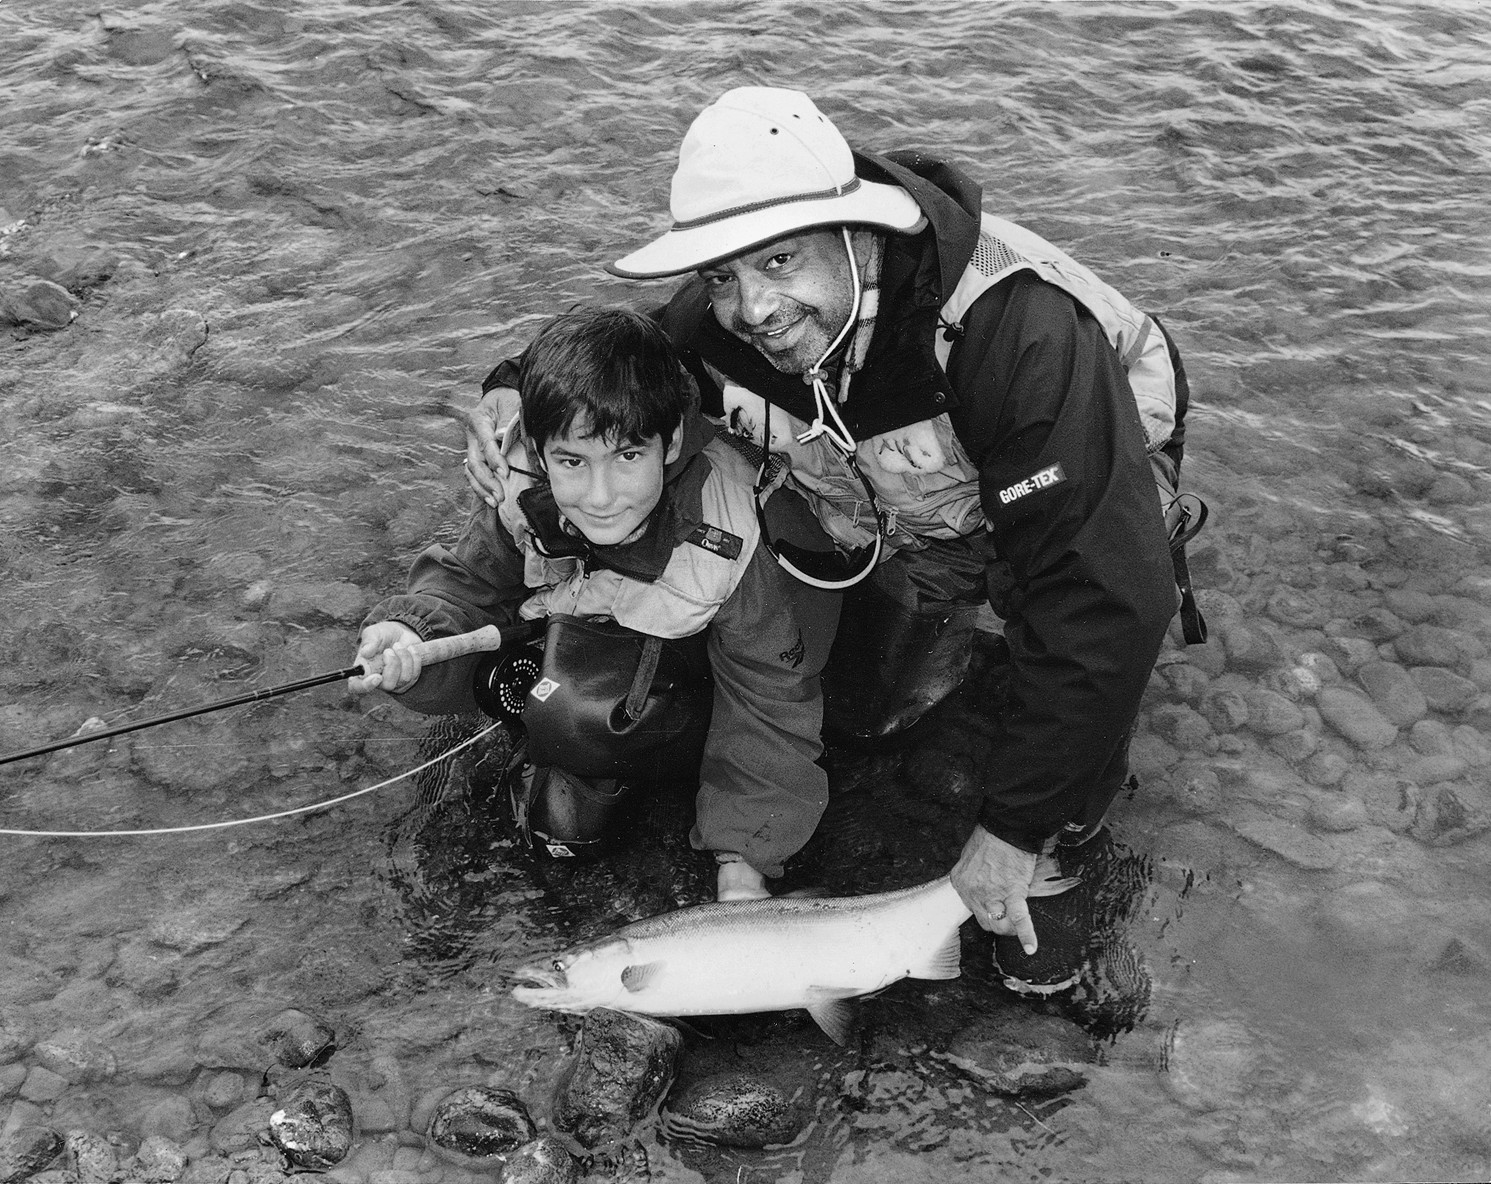 Cheech Marin, right, fishing for sockeye salmon in Alaska with his son Joey, in an undated family photo.